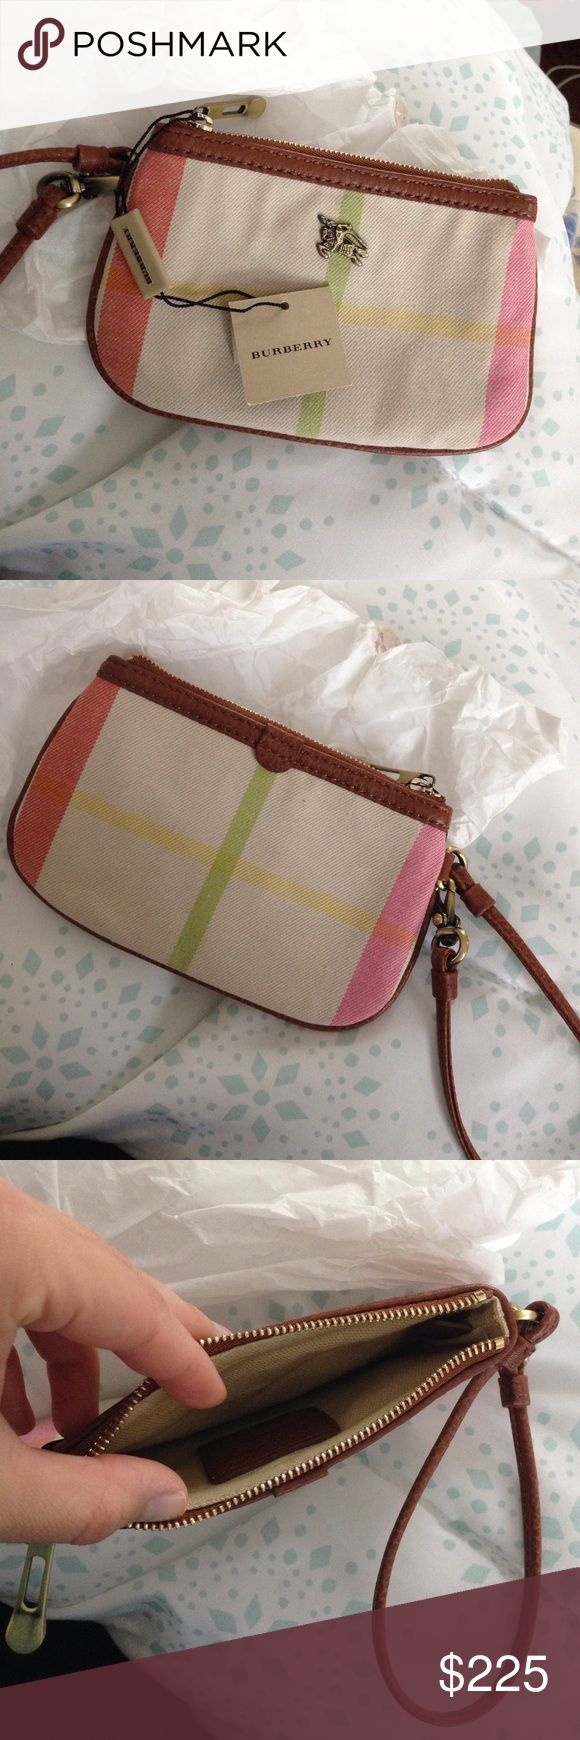 Burberry Plaid Wallet So cute! NWT!! Received as a gift but never used. Burberry Bags Clutches & Wristlets